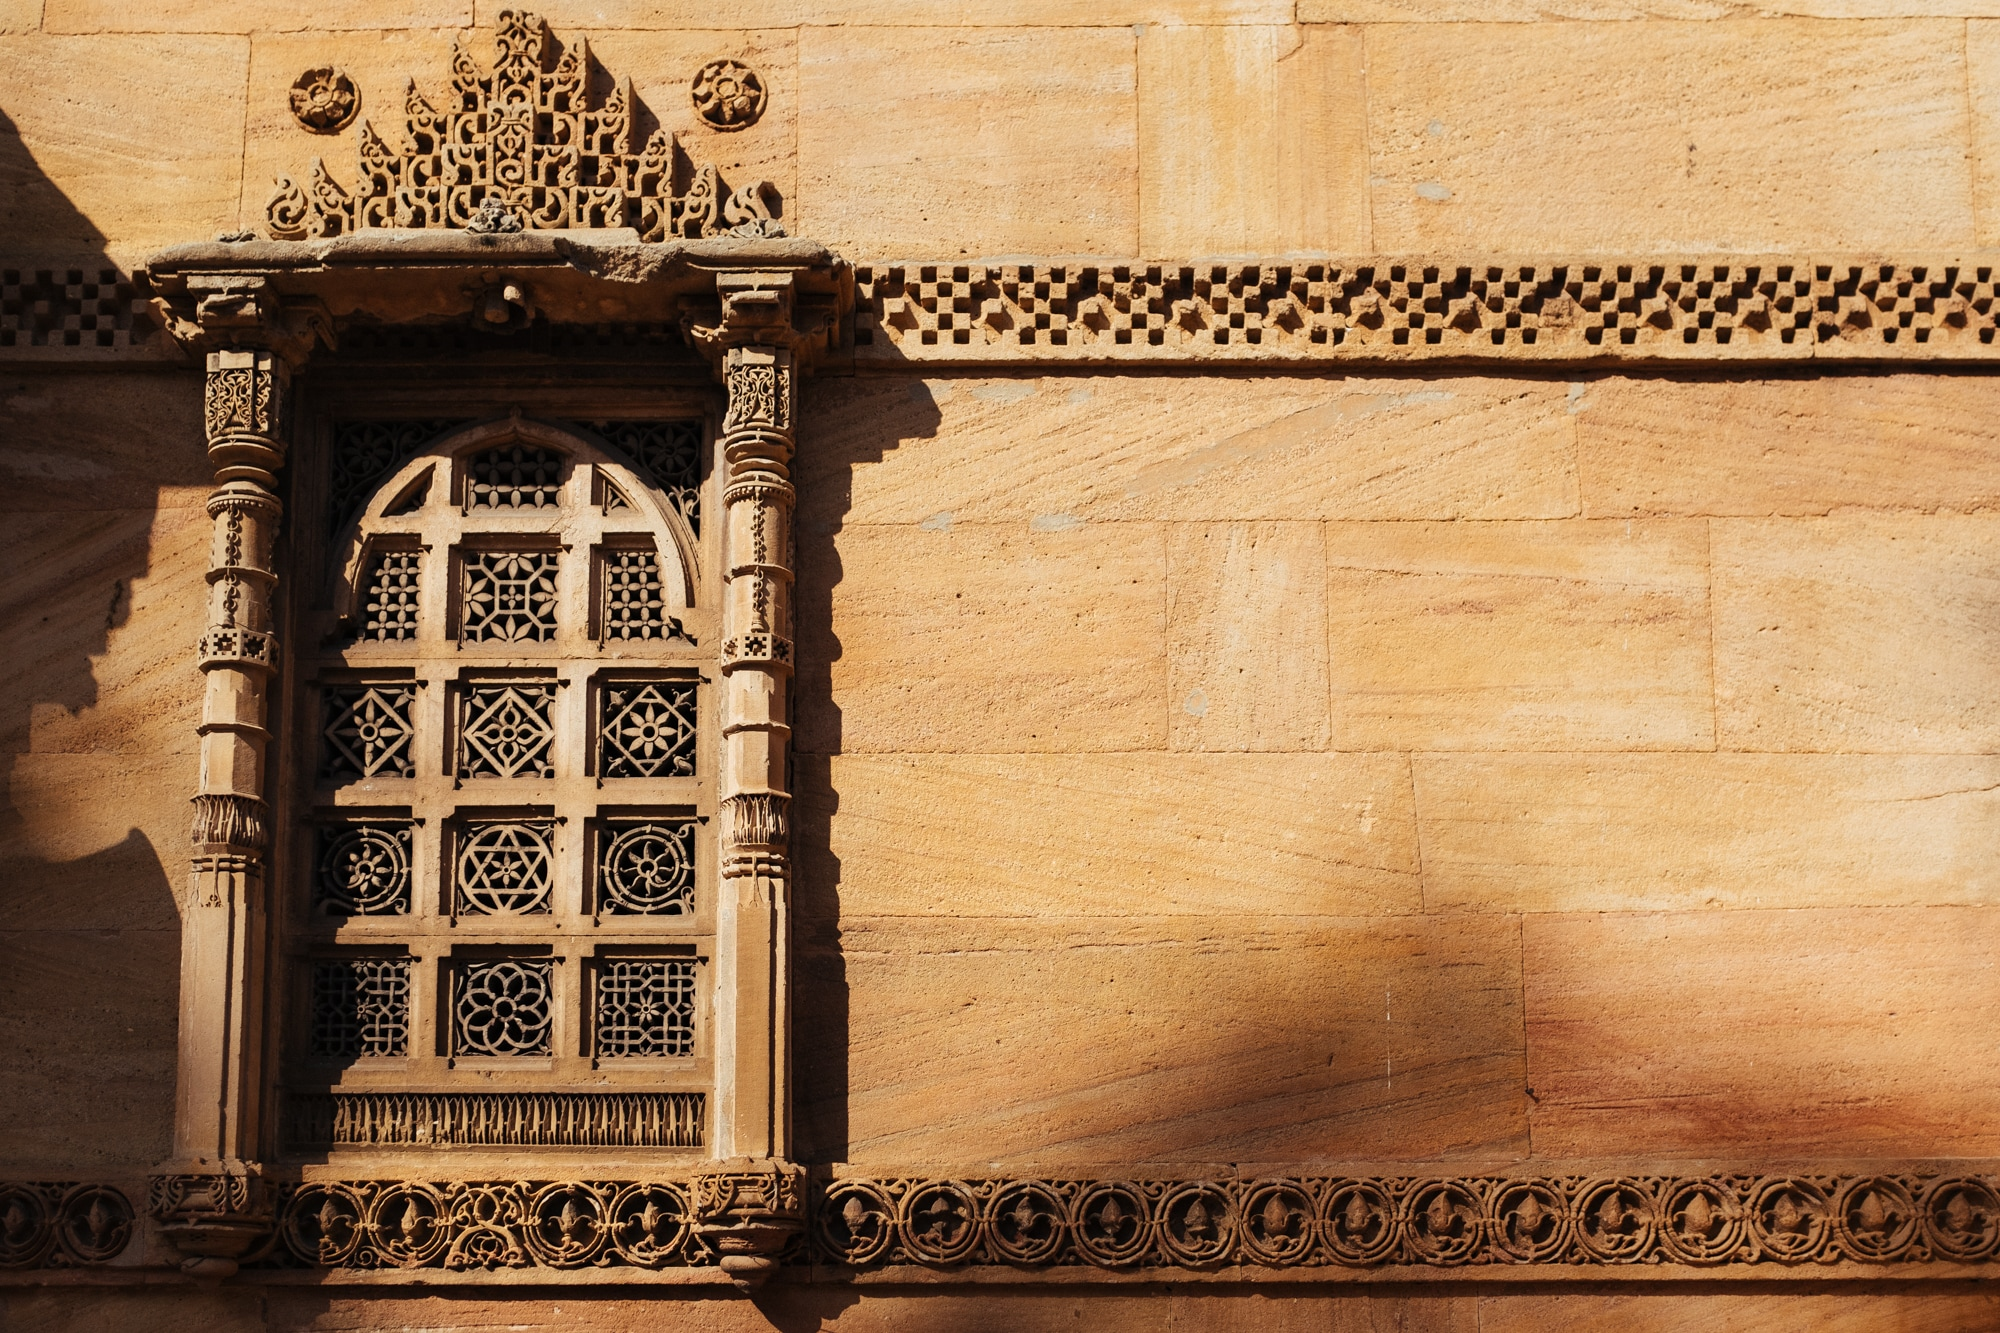 One of the windows of Rani Rupmati Mosque, Ahmedabad.